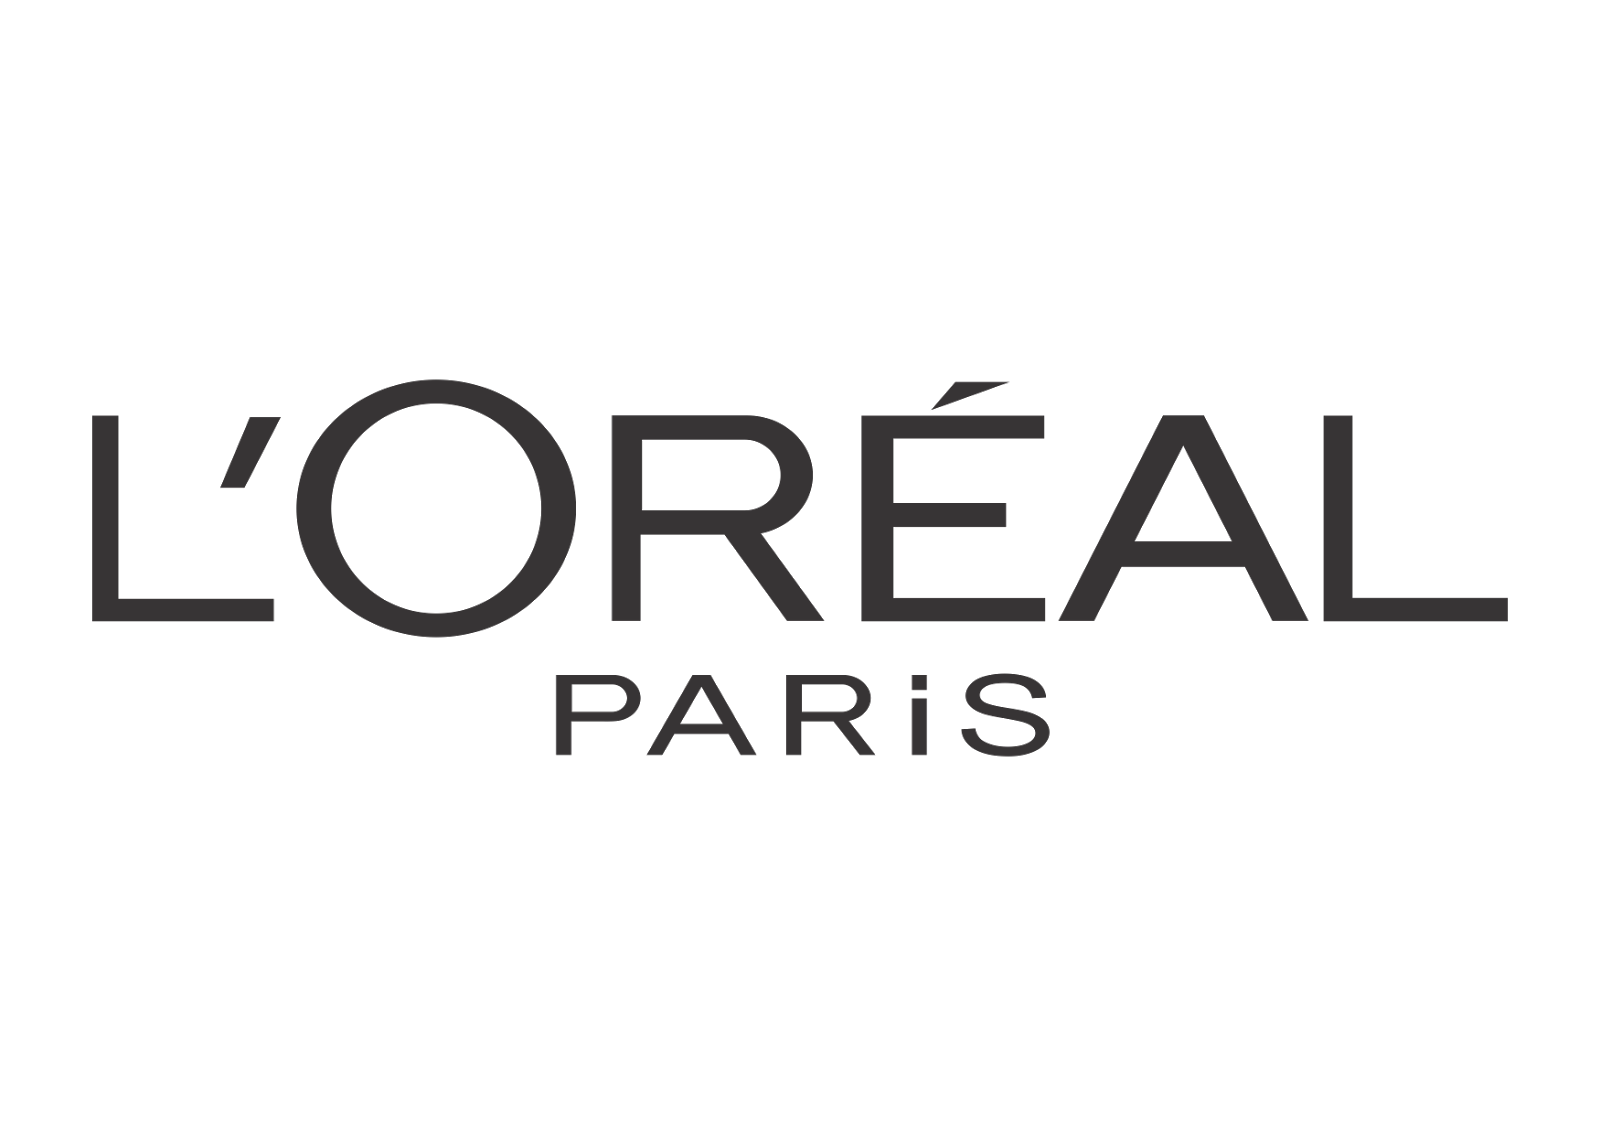 Loreal professional logo download free clip art with a.